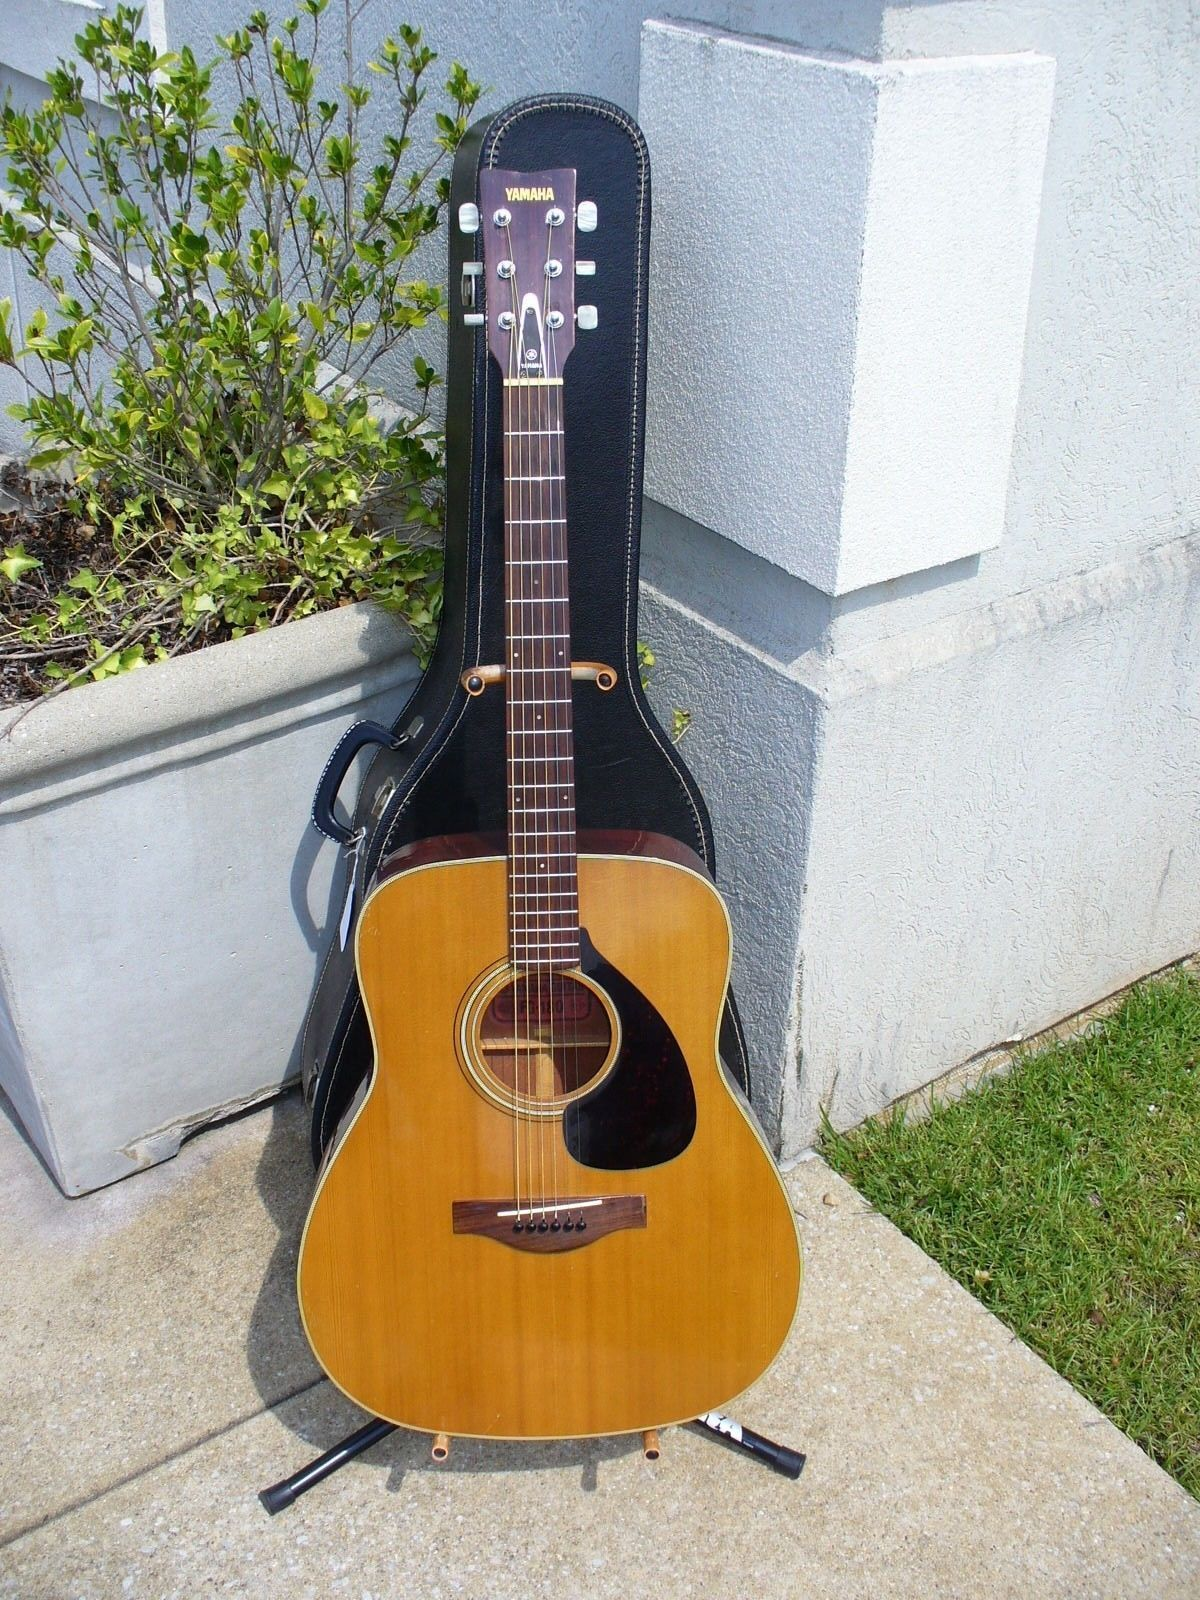 Guitar Vintage Yamaha Fg 180 Dreadnaught Acoustic Guitar Red Label Made In Taiwan W Ch Please Retweet